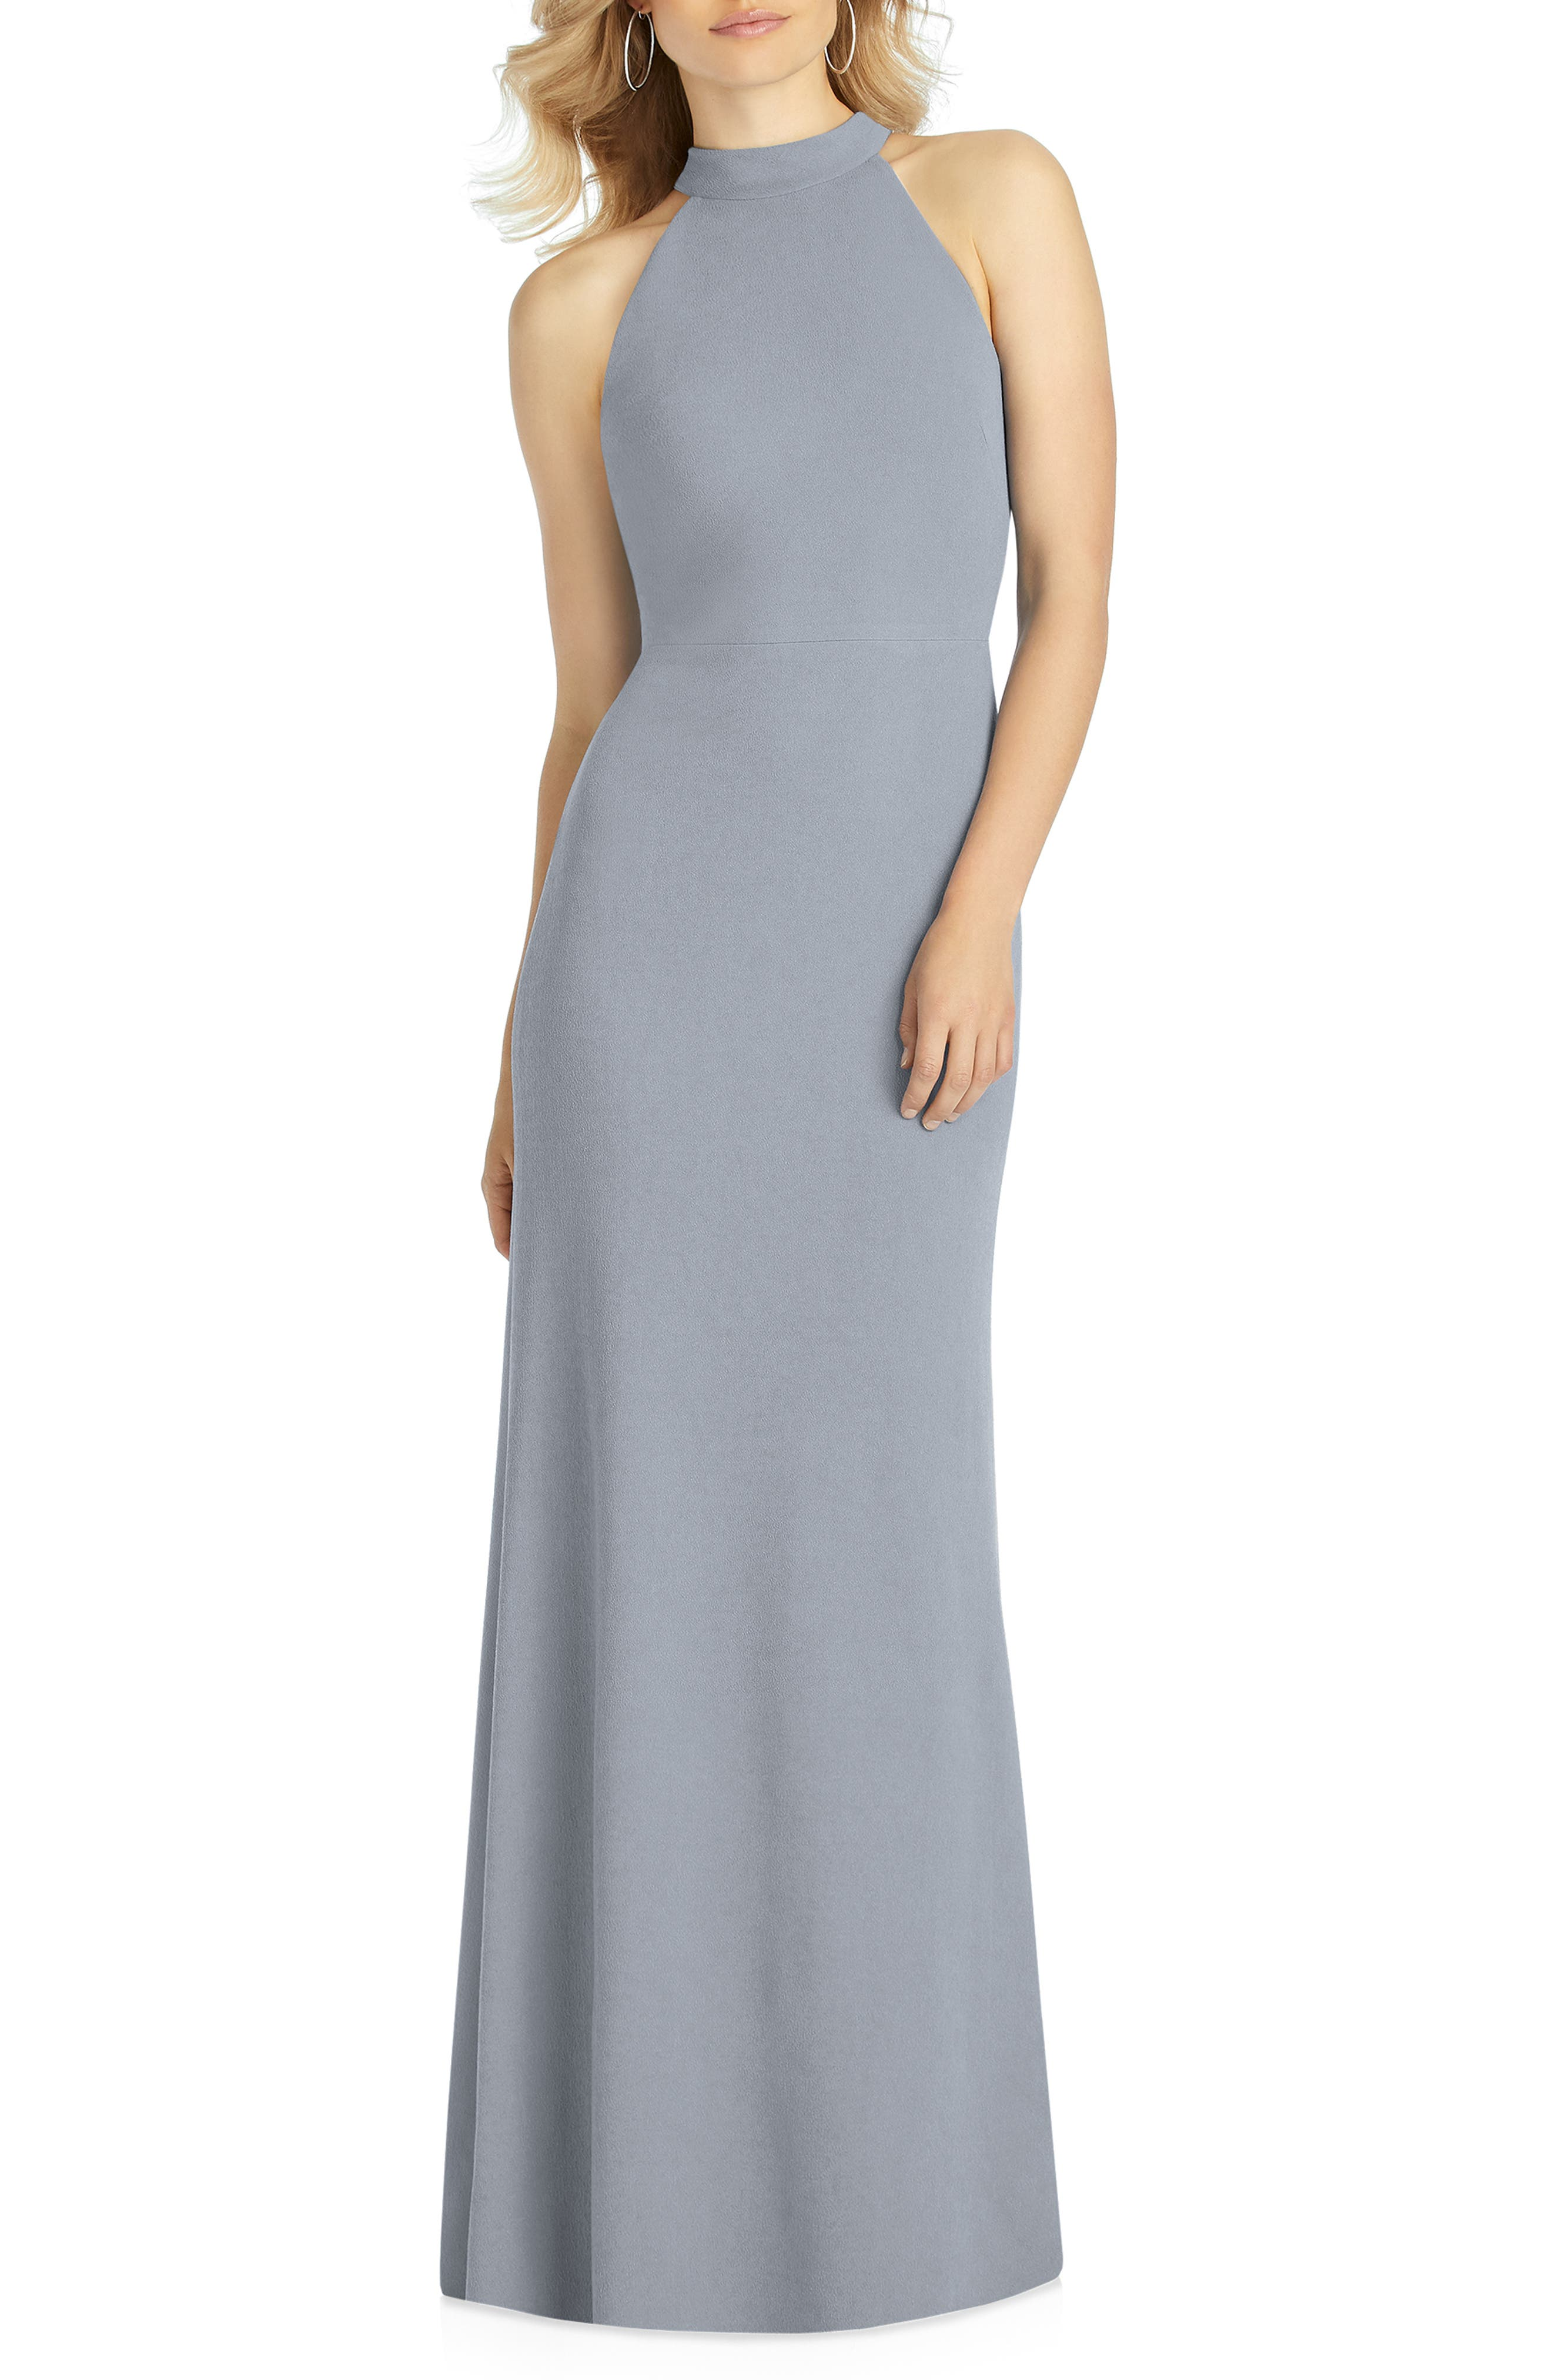 AFTER SIX, Halter Neck Stretch Crepe Evening Dress, Alternate thumbnail 6, color, PLATINUM